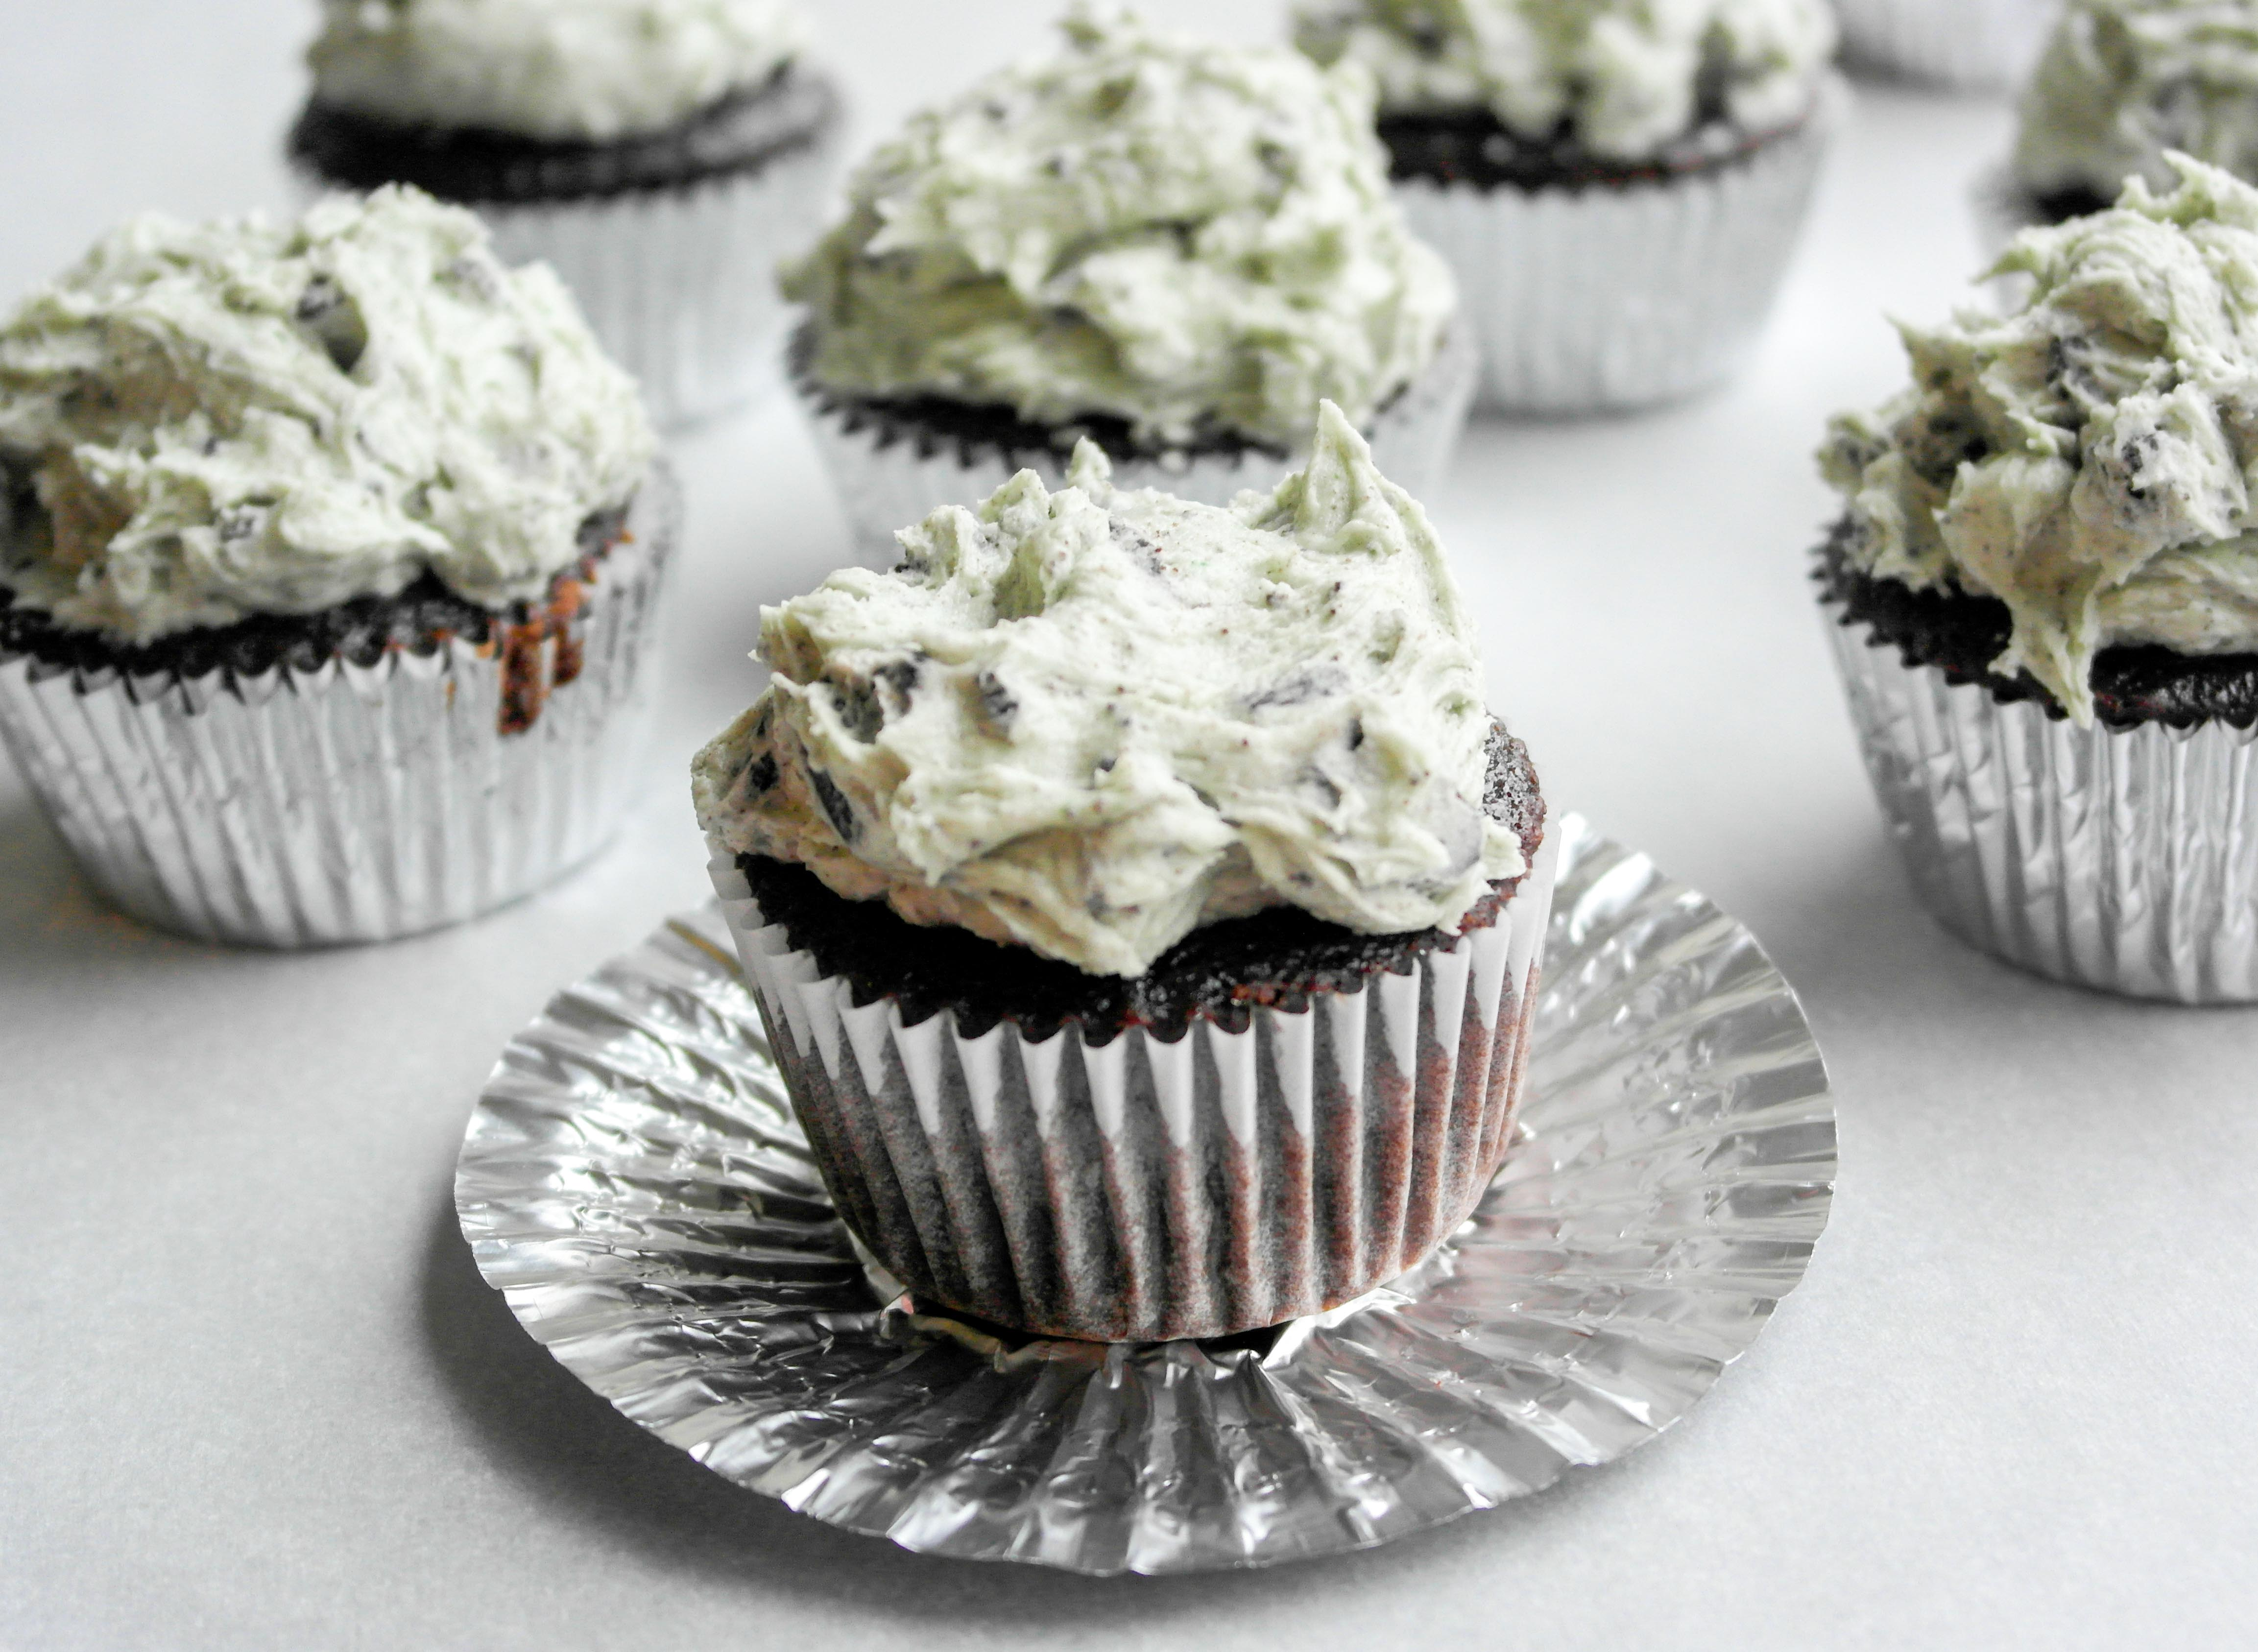 Best Chocolate Cupcakes – Baking Is A Science